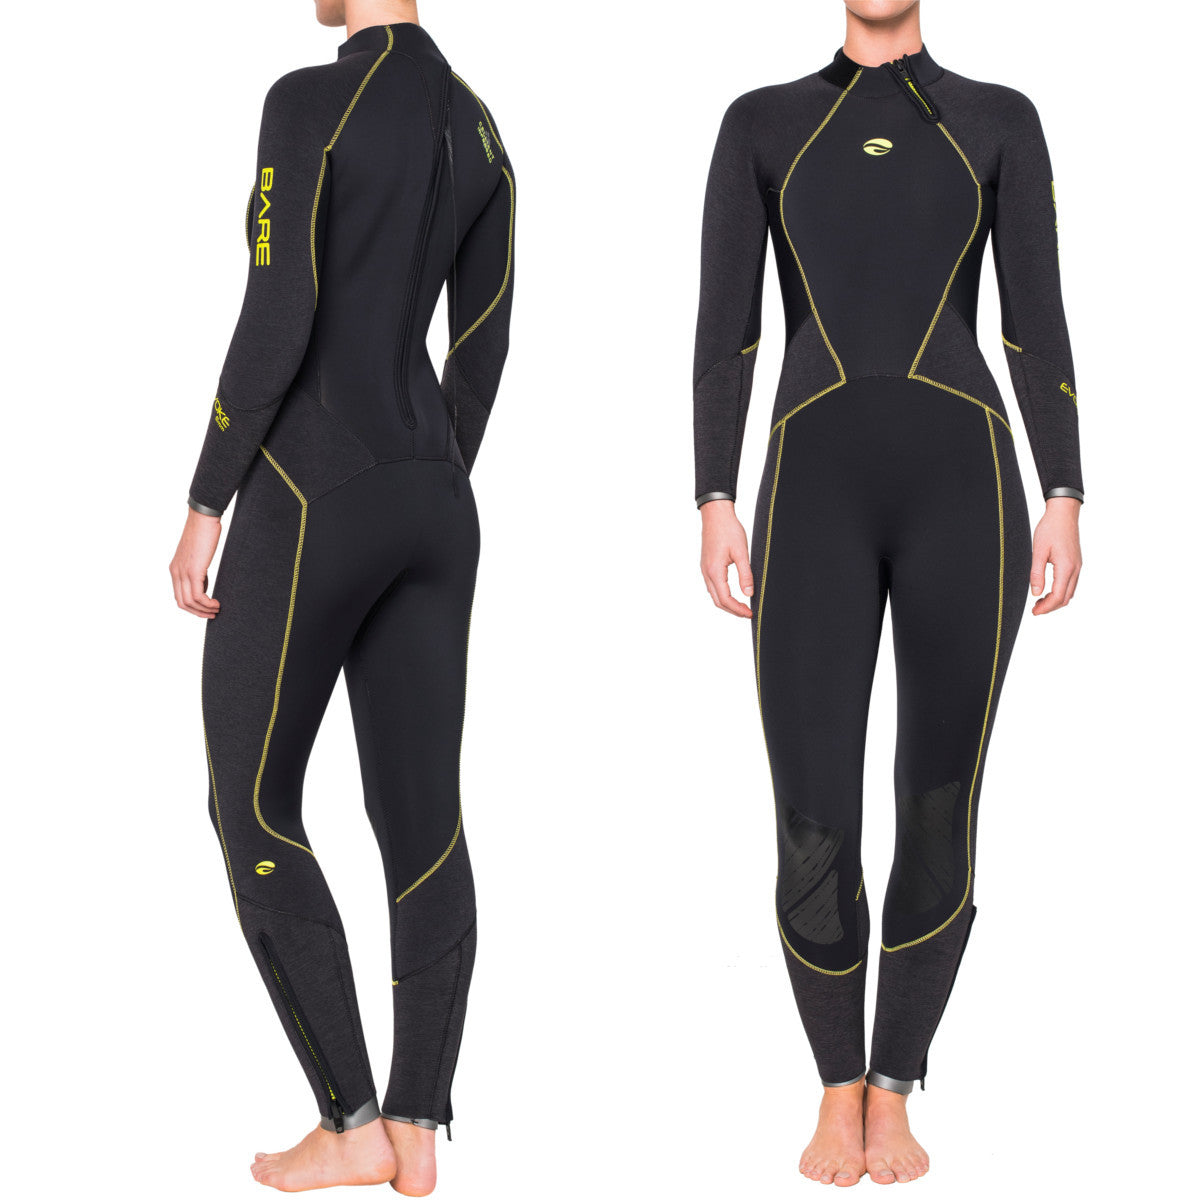 Bare Evoke 7mm Wetsuit: Womens - Oyster Diving Shop - 7